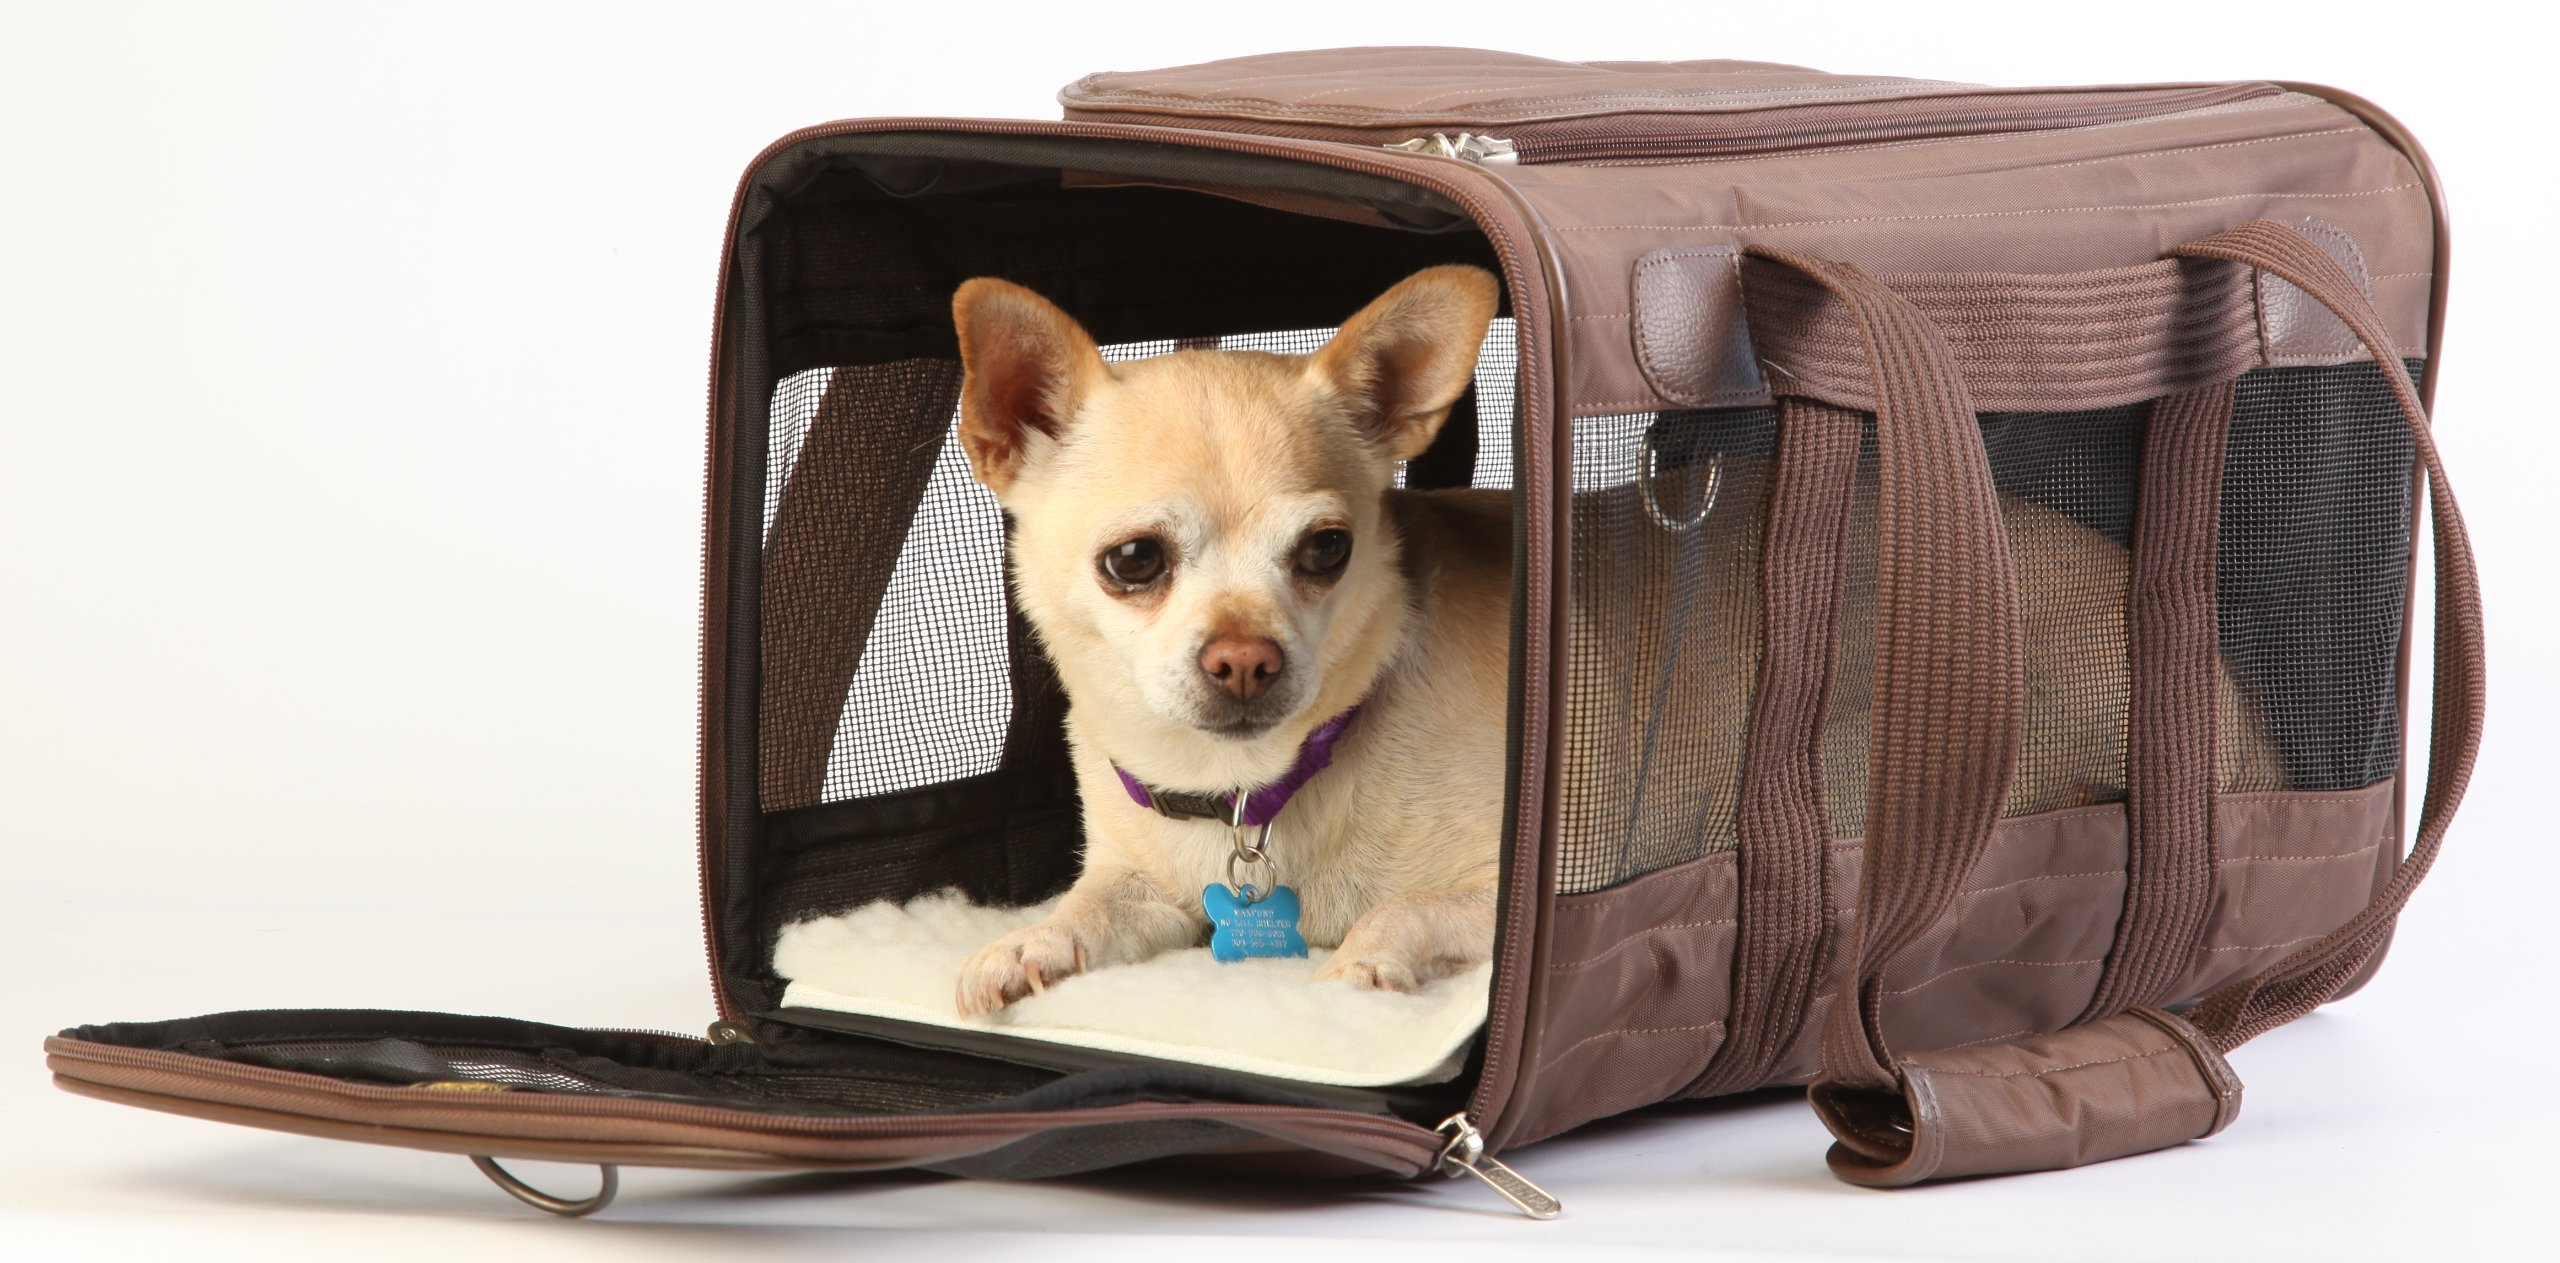 Sherpa Travel Original Deluxe Airline Approved Pet Carrier Small, Brown by Sherpa (Image #5)